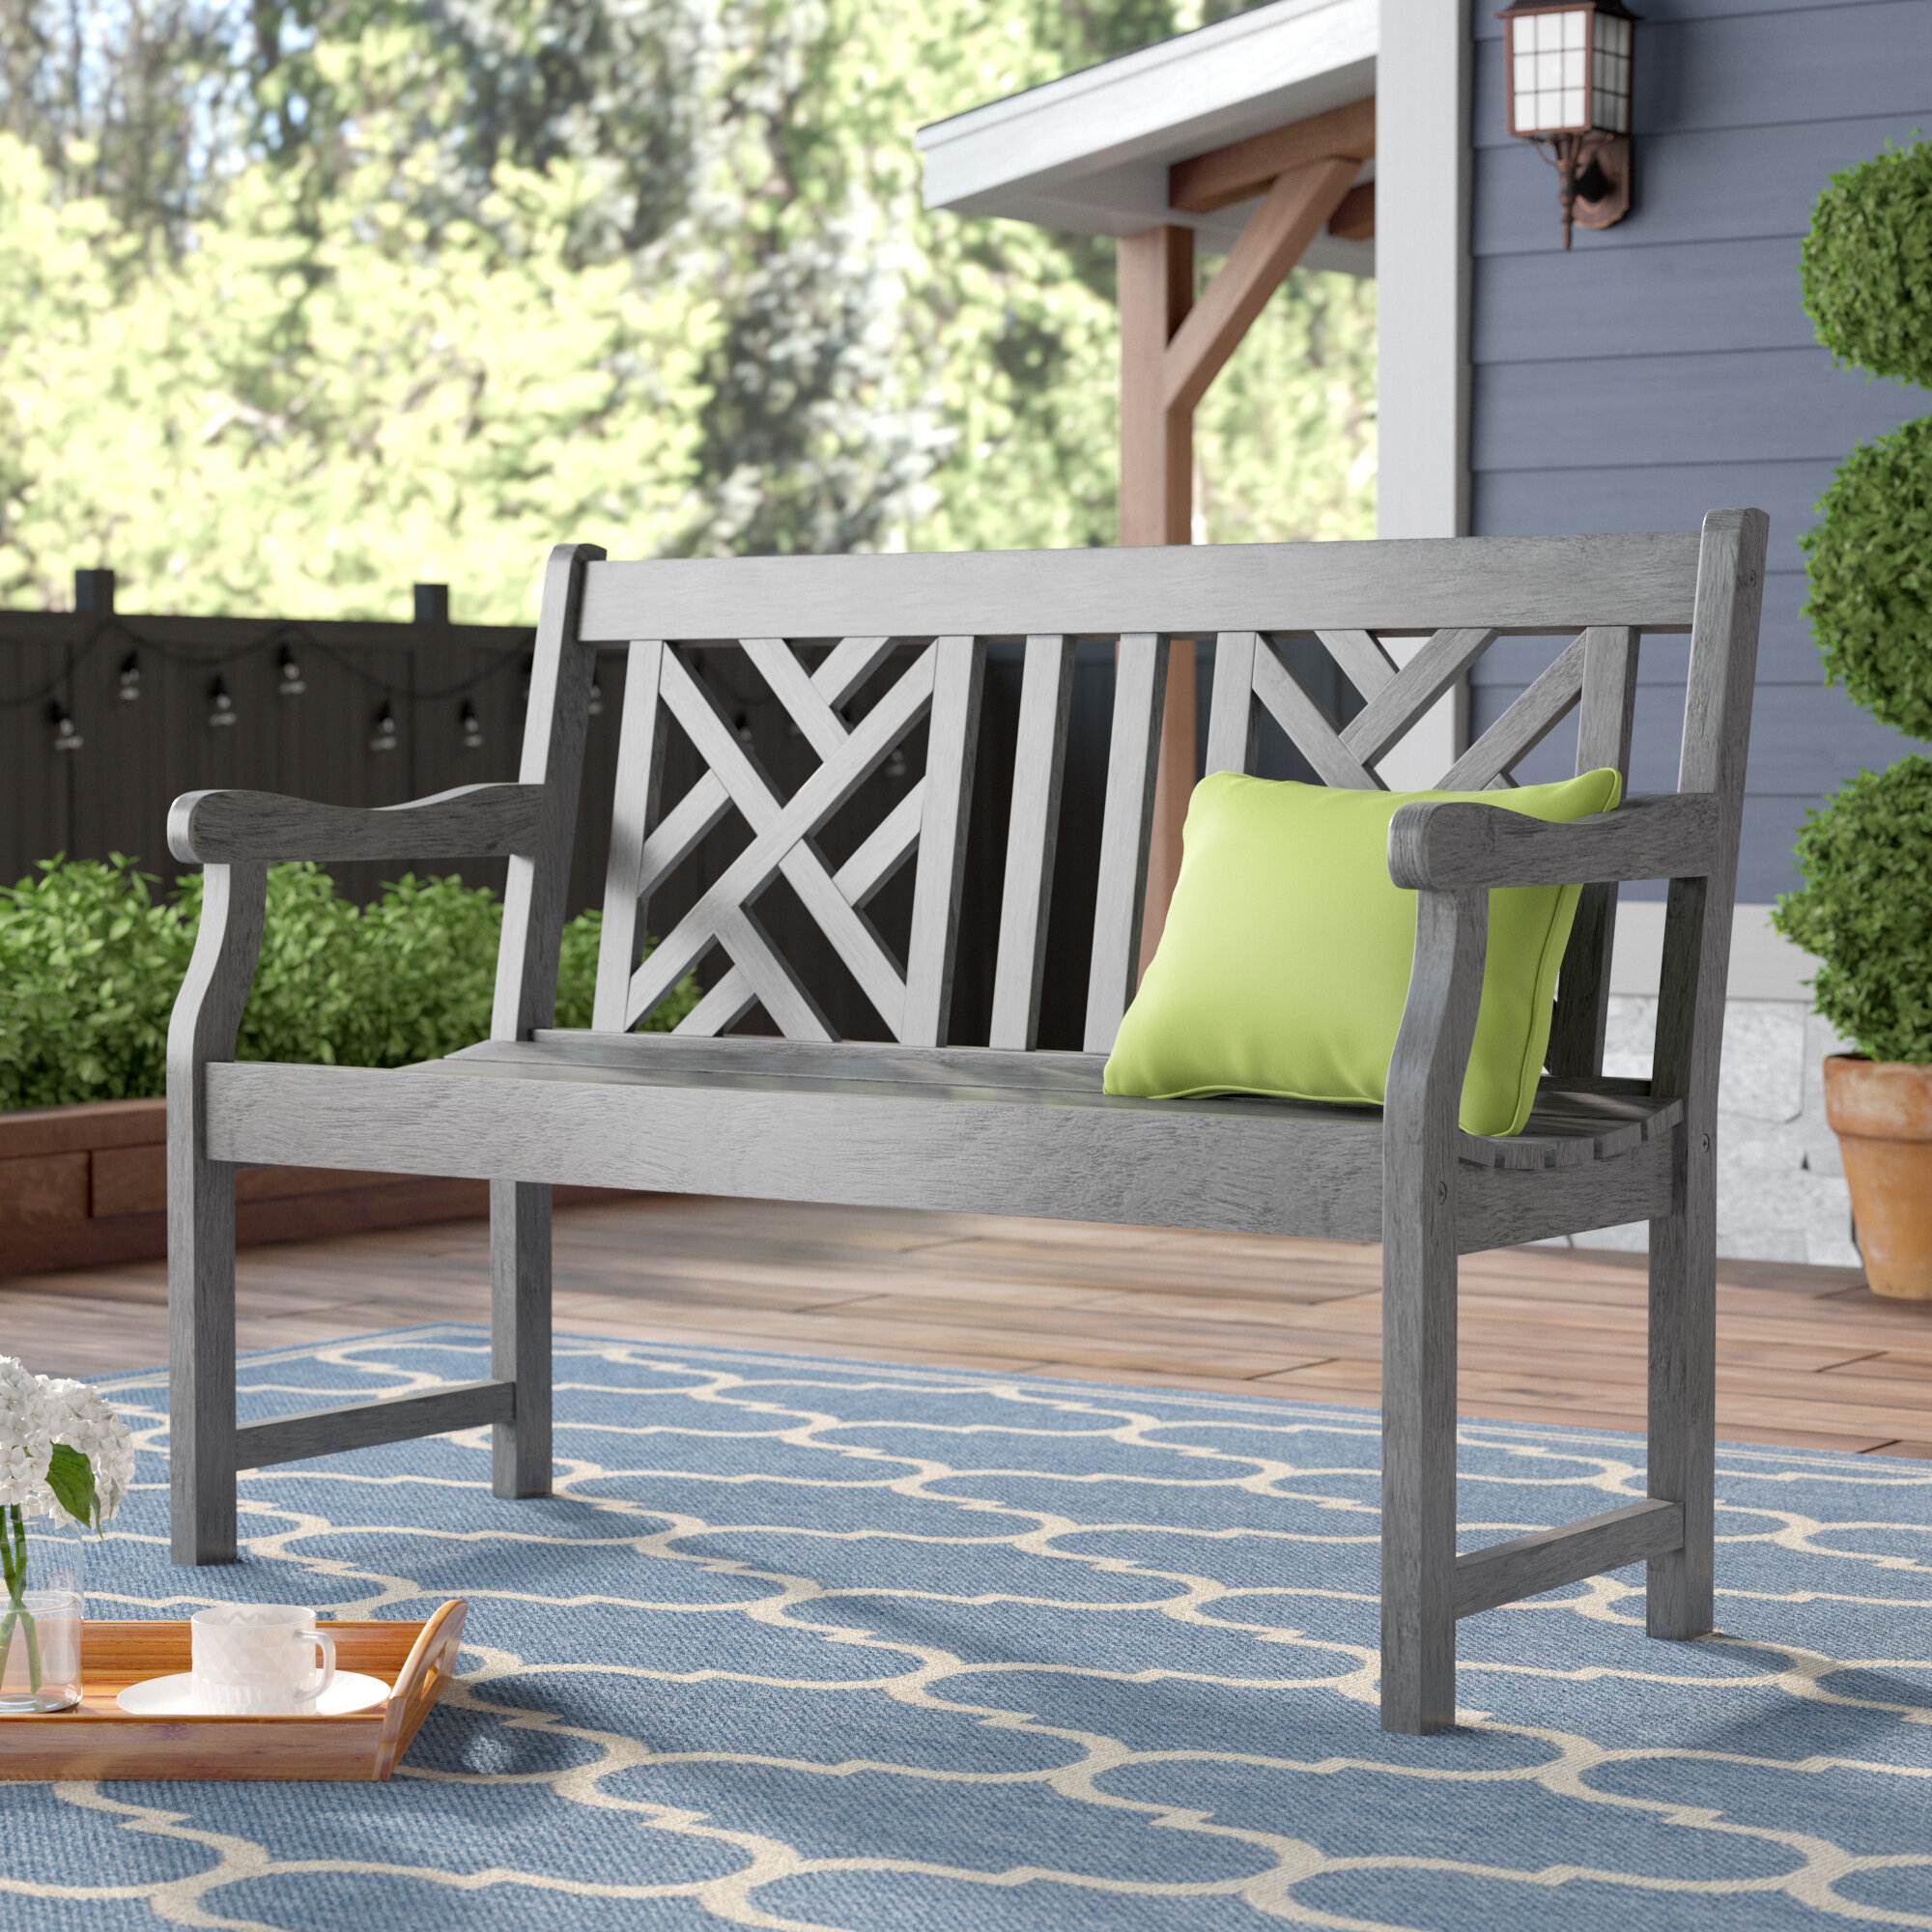 Solid Wood Outdoor Benches You'Ll Love In 2020 | Wayfair Regarding Amabel Wooden Garden Benches (View 21 of 25)